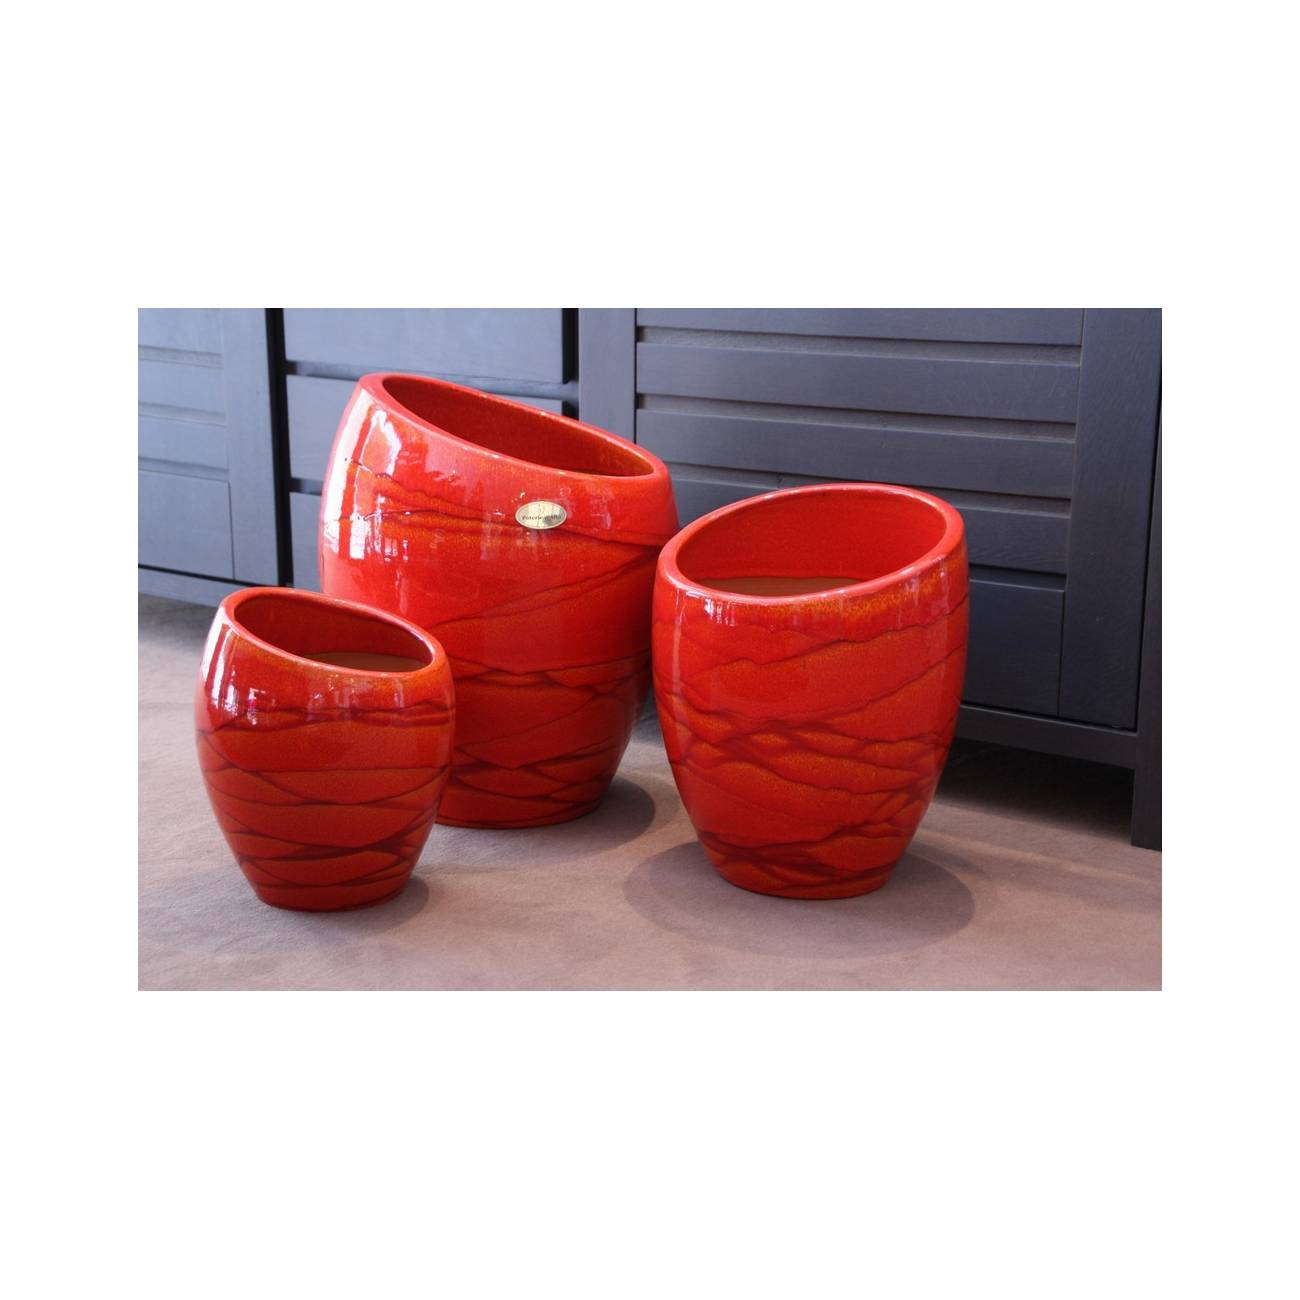 Pot design et objet d co orion collection soleil couchant - Objet deco design rouge ...